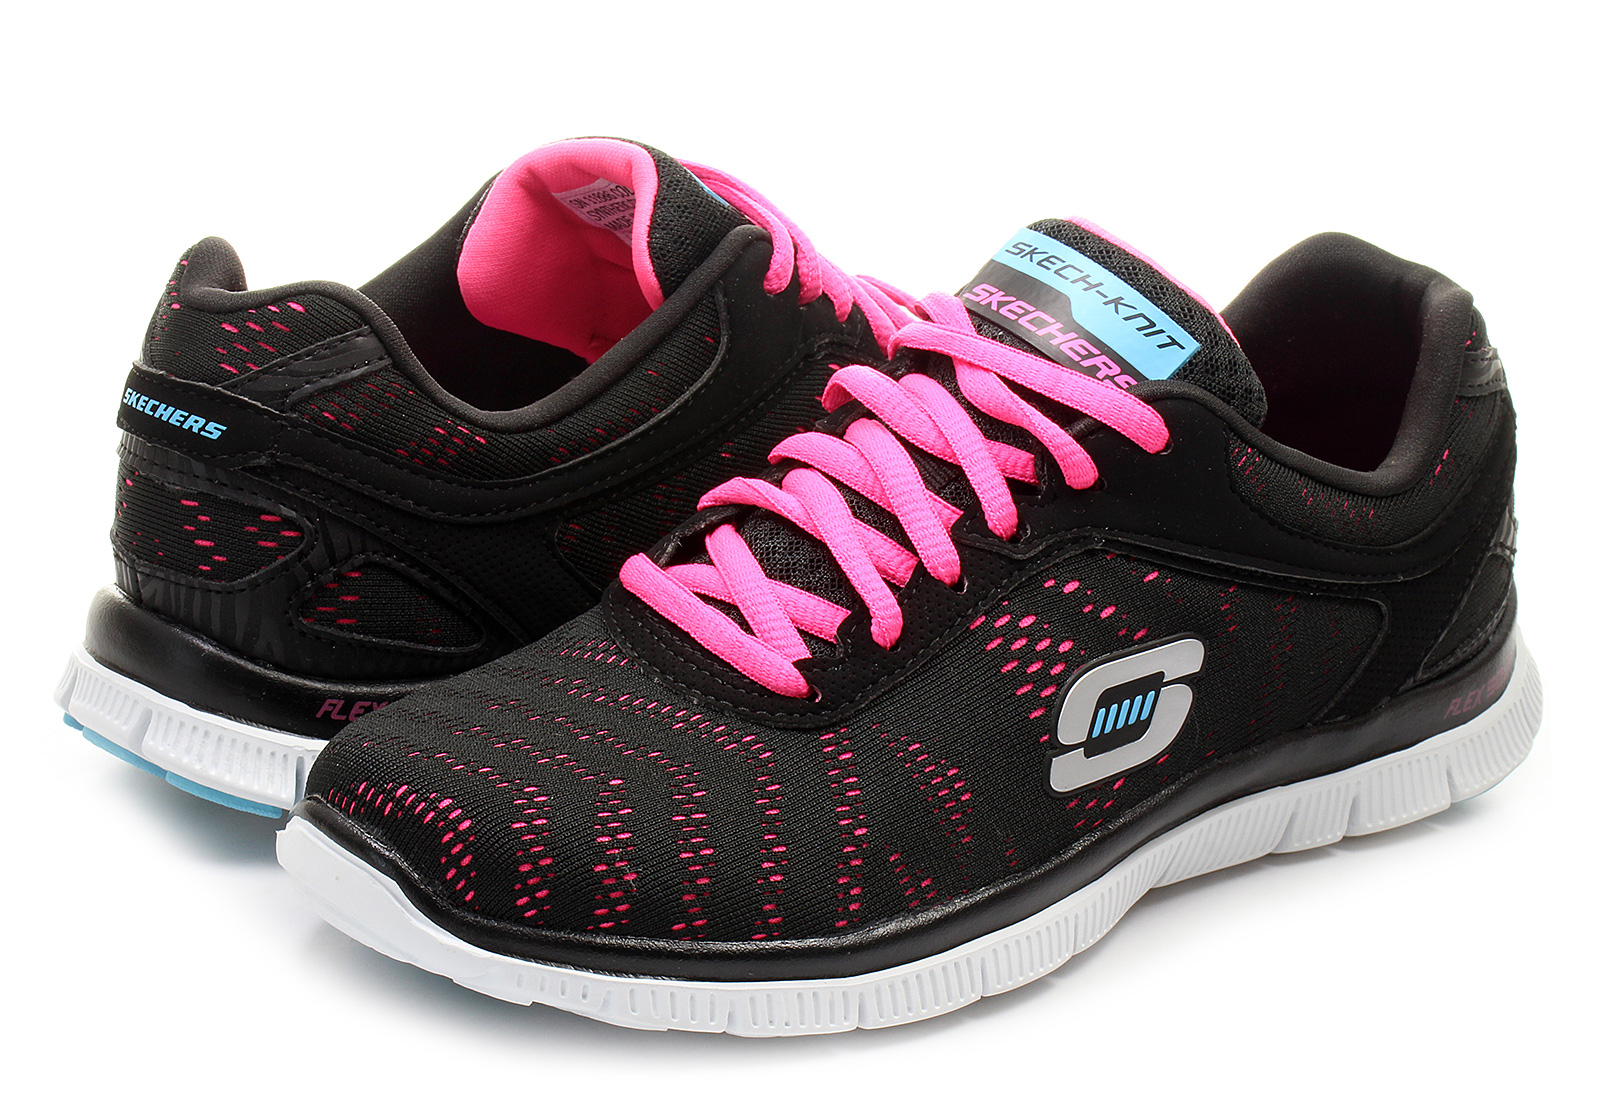 buy skechers womens shoes online off35 discounted. Black Bedroom Furniture Sets. Home Design Ideas